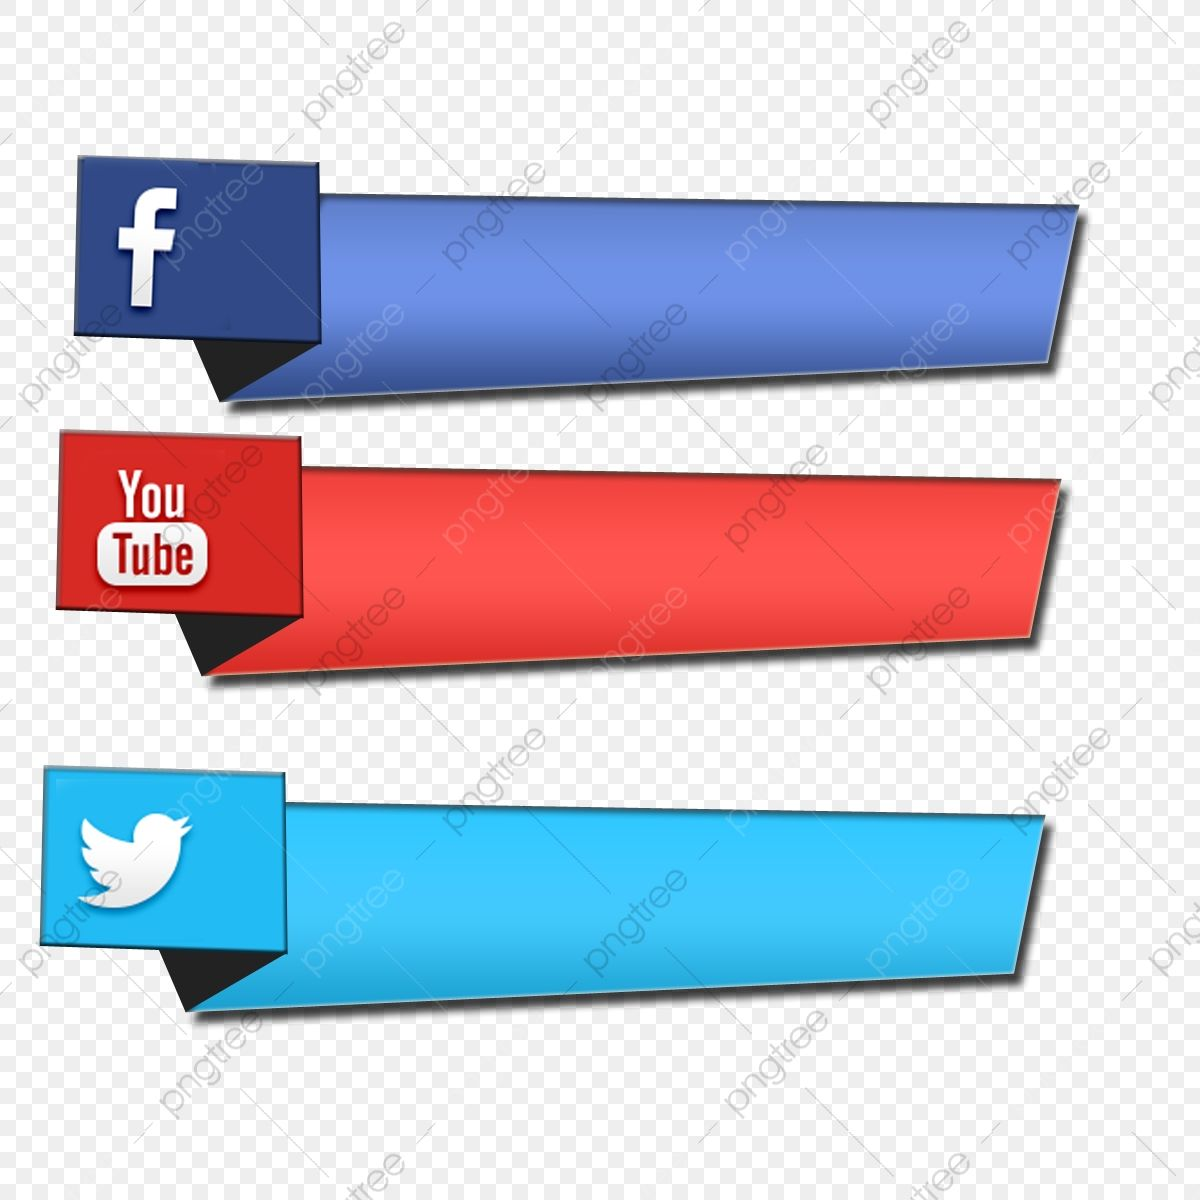 Facebook Youtube Twitter Social Media 3d Icon Facebook Icons Youtube Icons Twitter Icons Png Transparent Clipart Image And Psd File For Free Download Twitter Icon Png Facebook Icons Social Media Icons